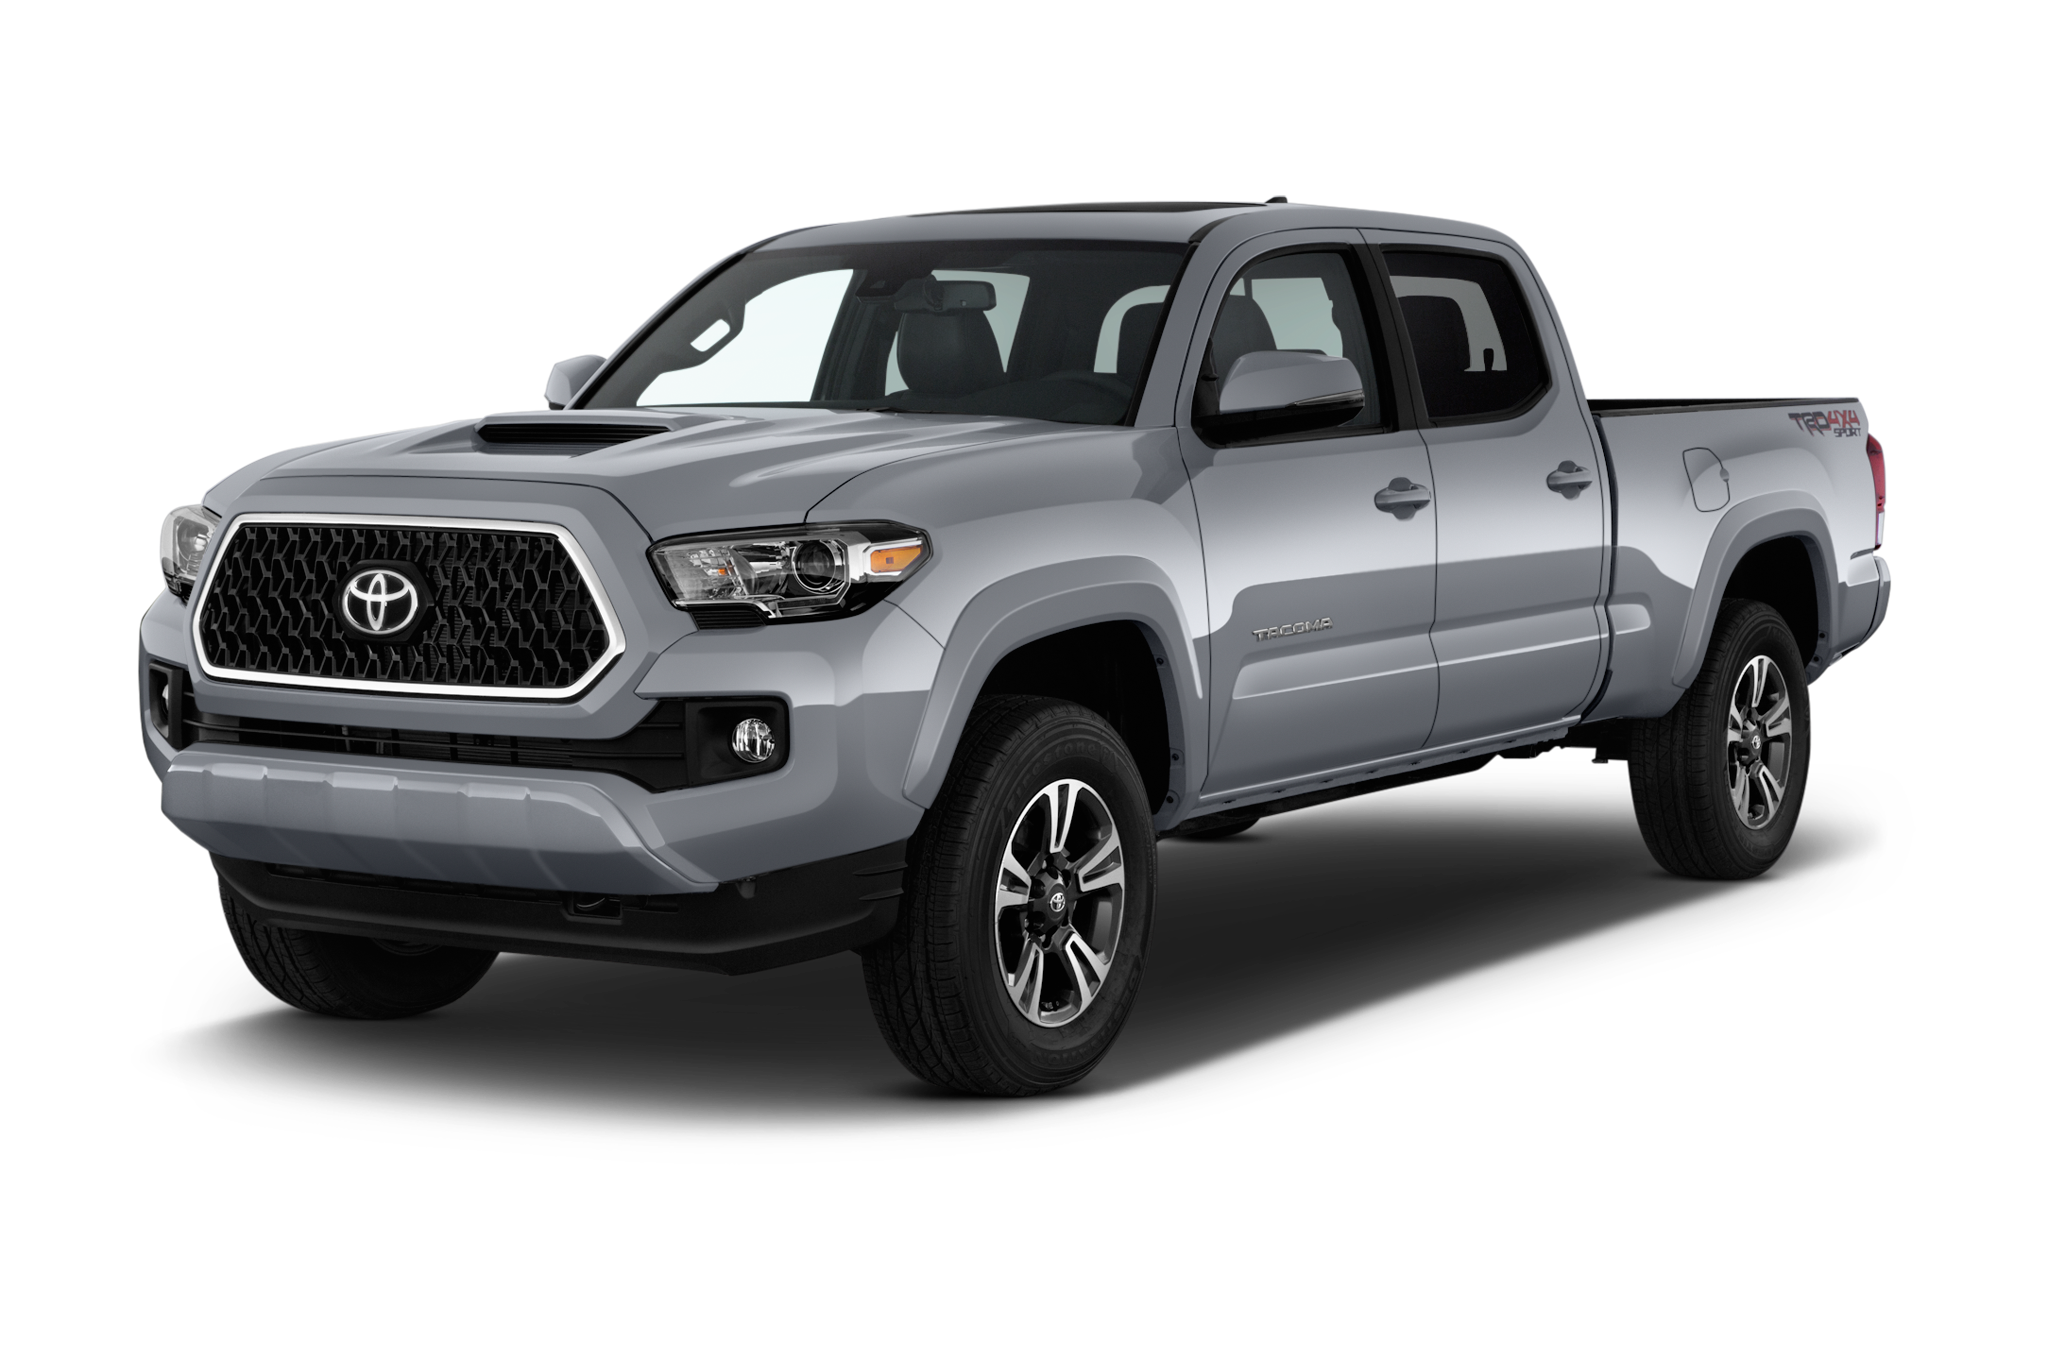 2019 toyota tacoma trd sport double cab v6 4x4 v6 auto lb photos and videos msn autos. Black Bedroom Furniture Sets. Home Design Ideas